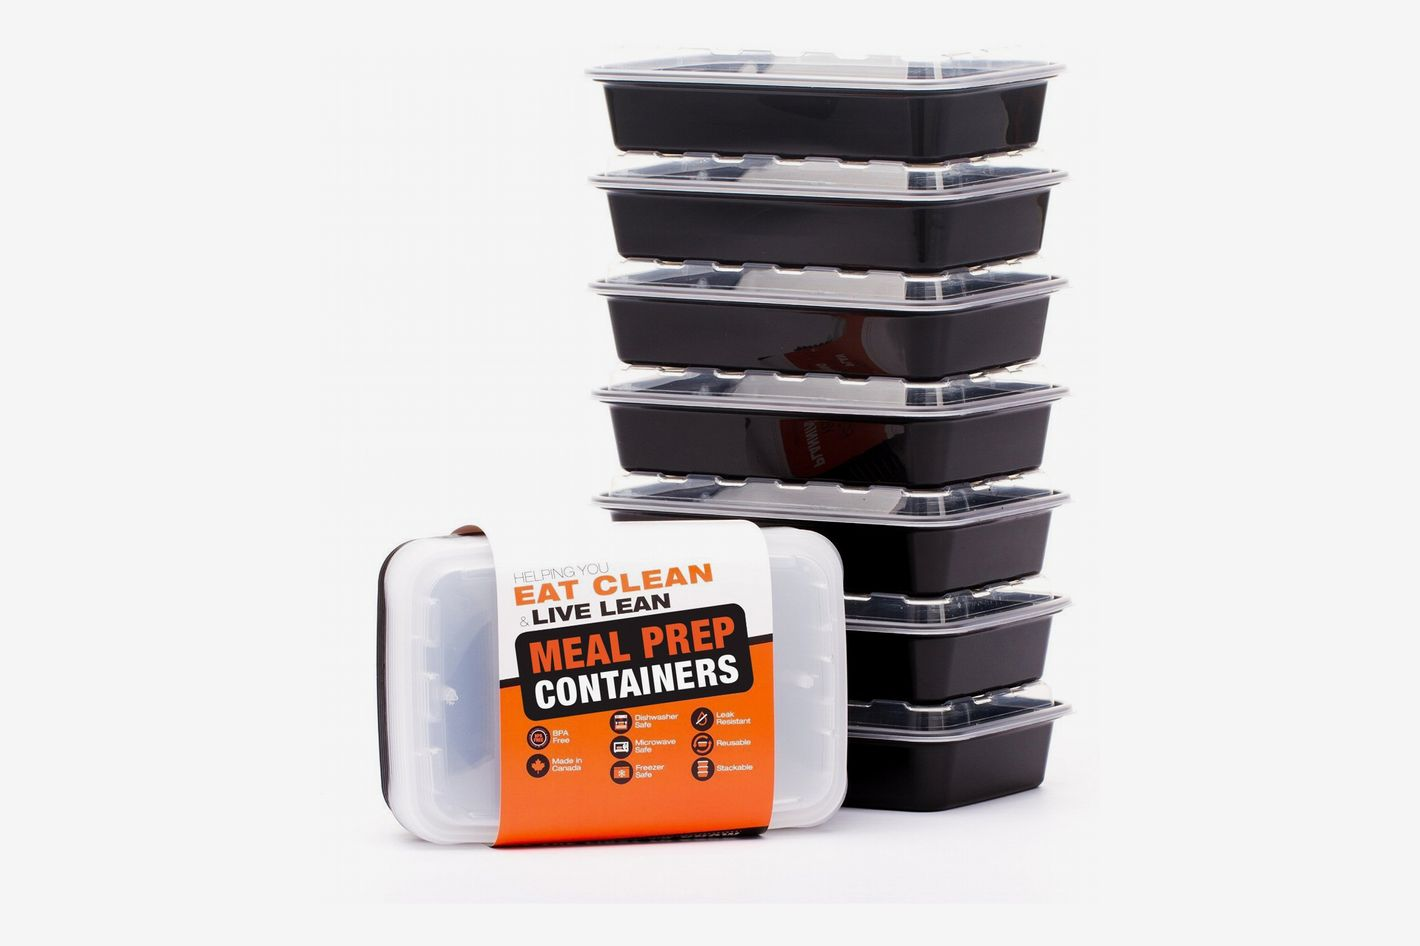 Evolutionize Healthy Meal Prep Containers (7 Pack, Single Compartment, 28 Ounce)